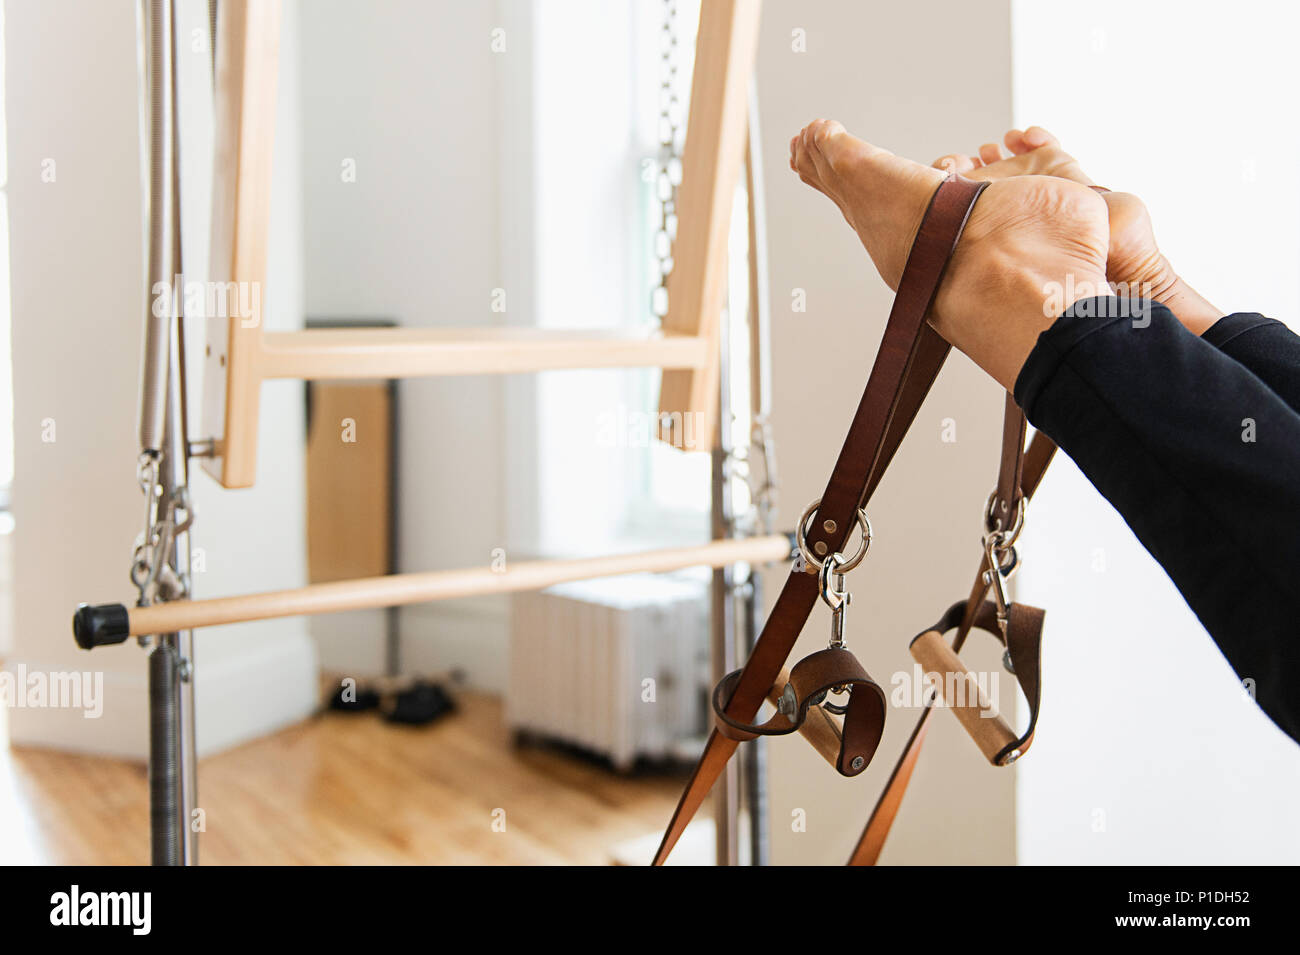 A woman working out on a reformer. - Stock Image